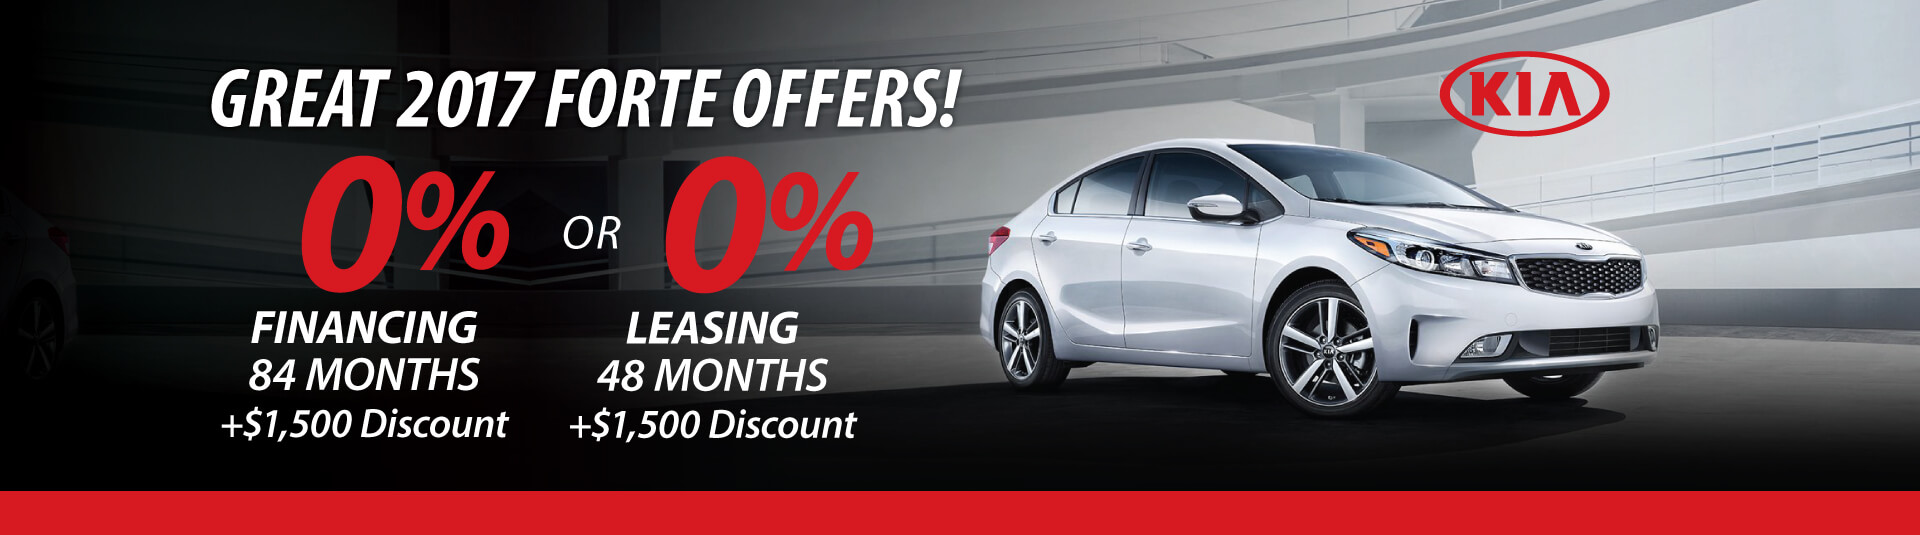 Kia Forte Finance Deal